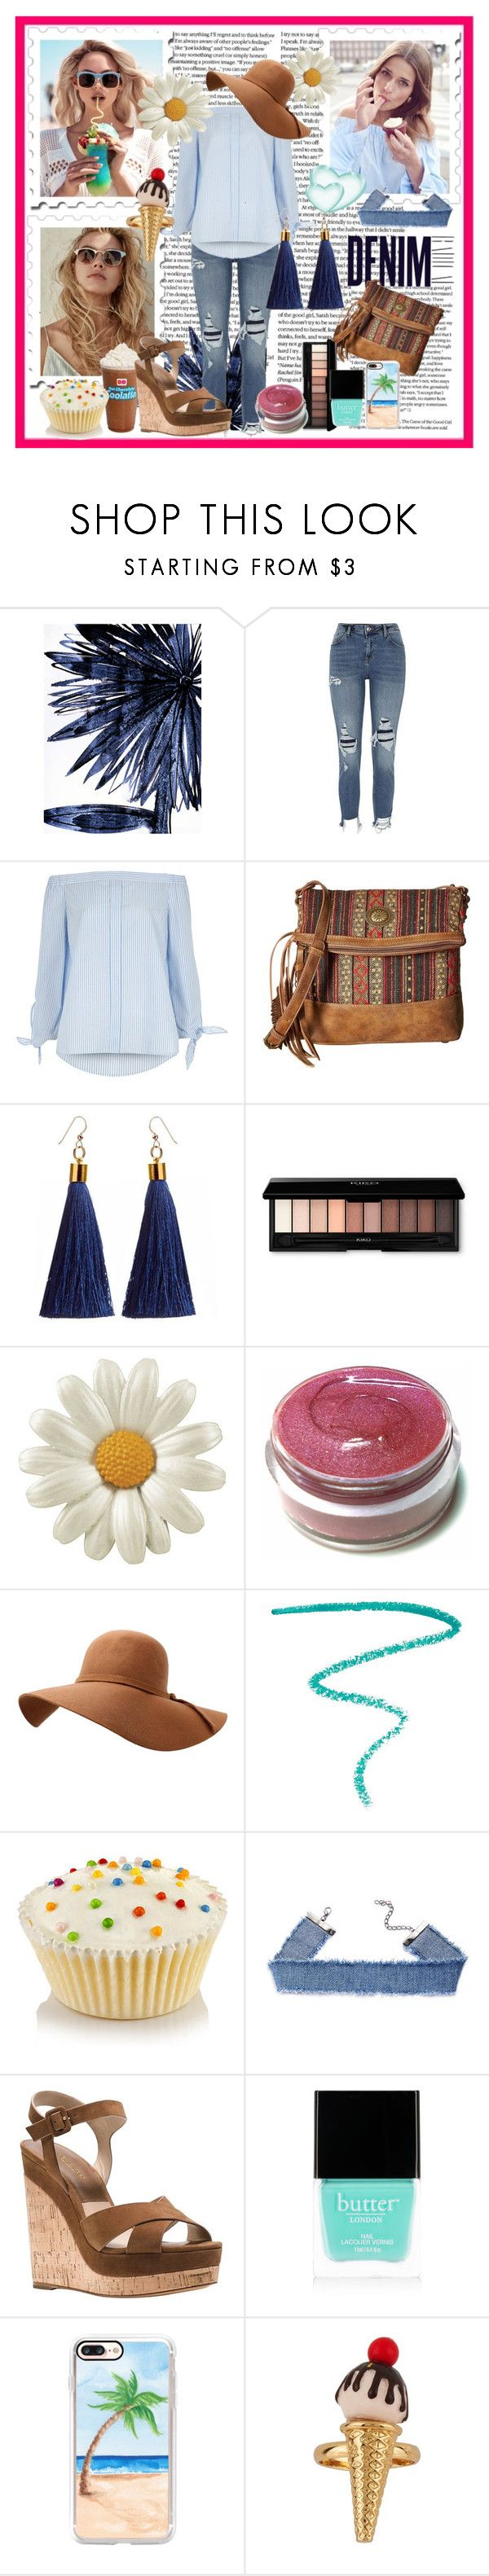 """""""Casual look"""" by annagiro on Polyvore featuring moda, Leftbank Art, Wildfox, River Island, Alima, American West, Marc Jacobs, Michael Kors, Butter London i Casetify"""